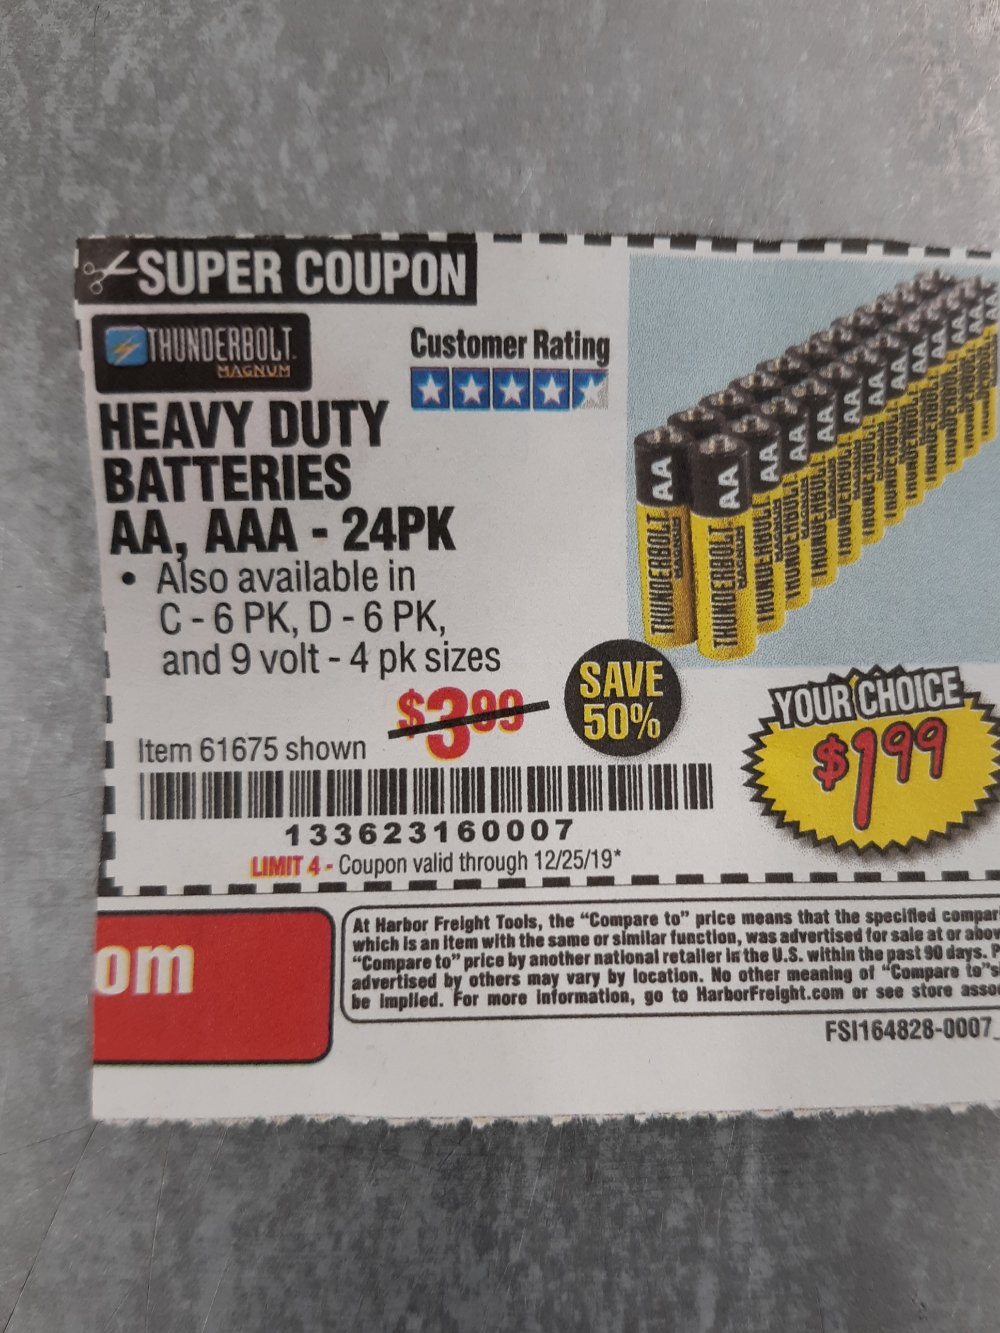 Harbor Freight Coupon, HF Coupons - 24 Pack Heavy Duty Batteries